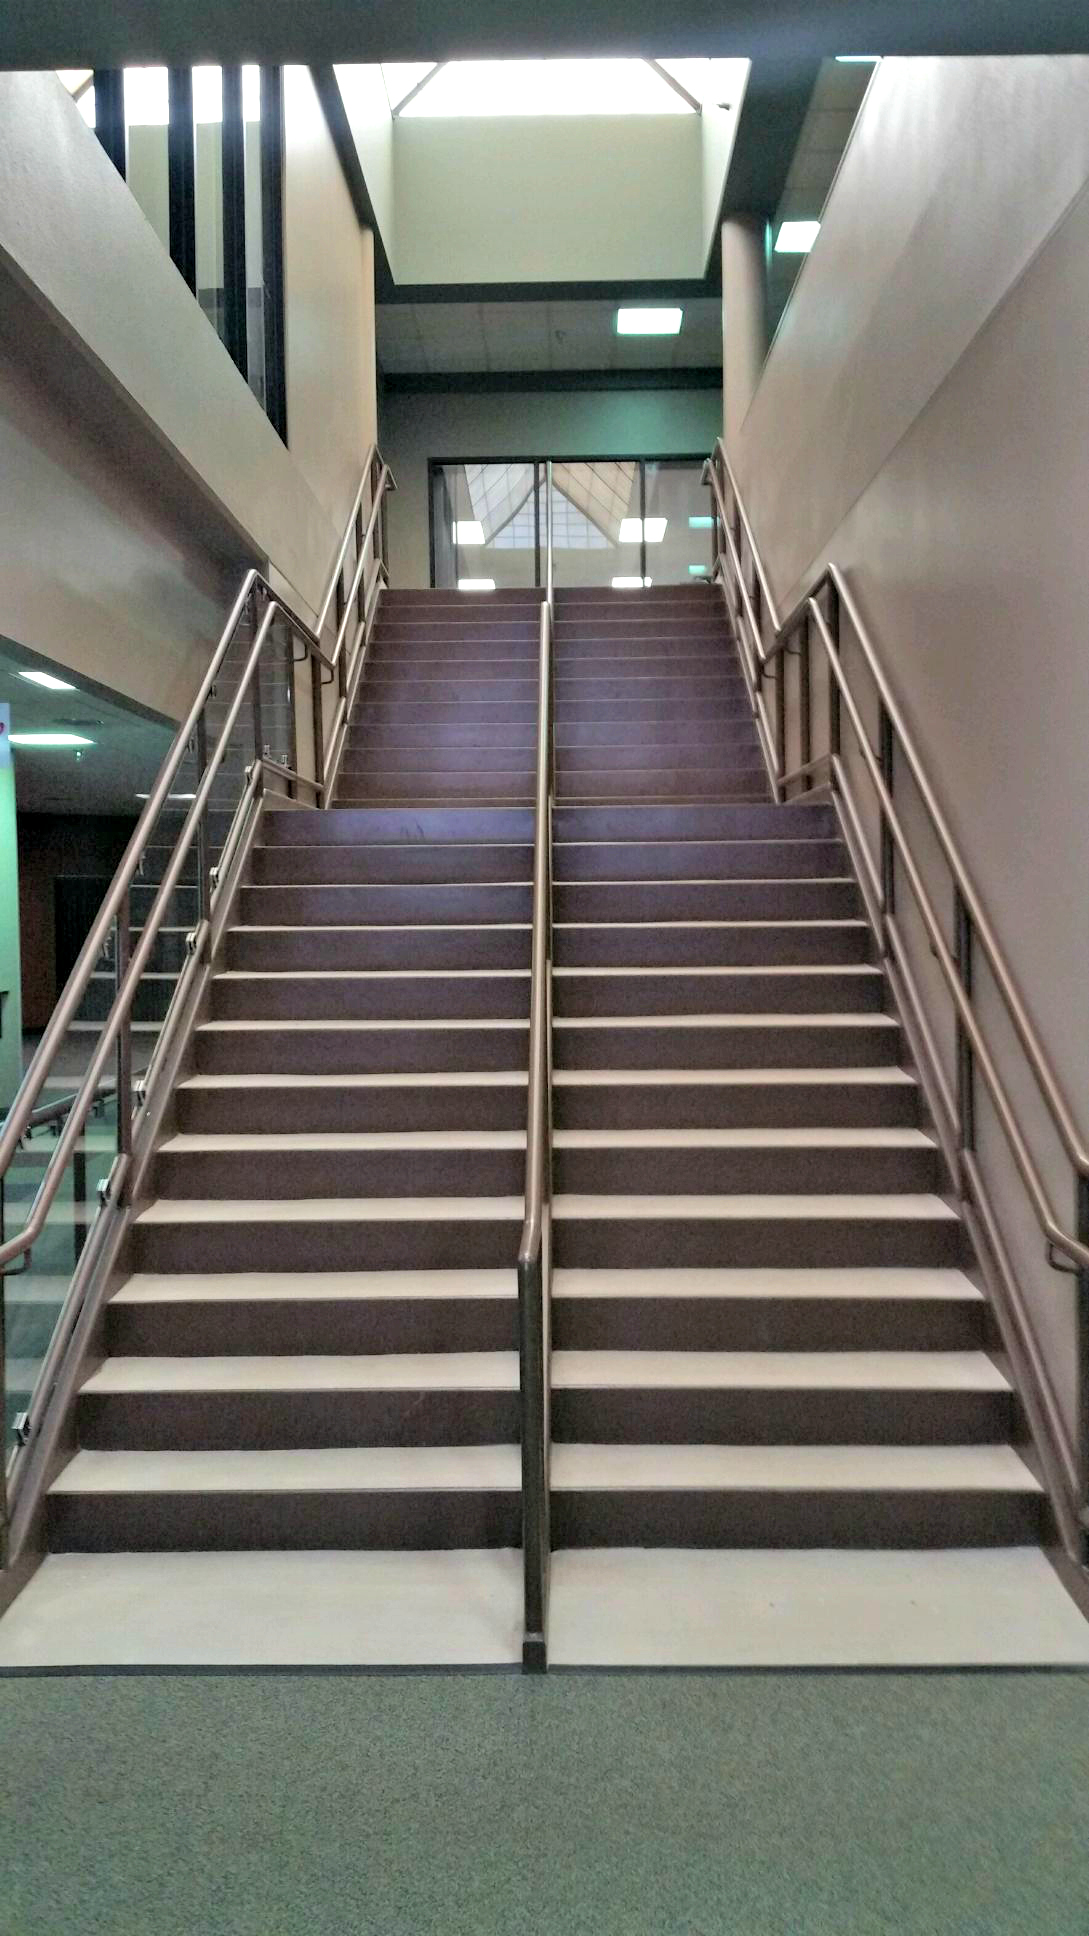 Accent Finishing painted the risers, hand rail, walls, and columns at the EastRidge Center